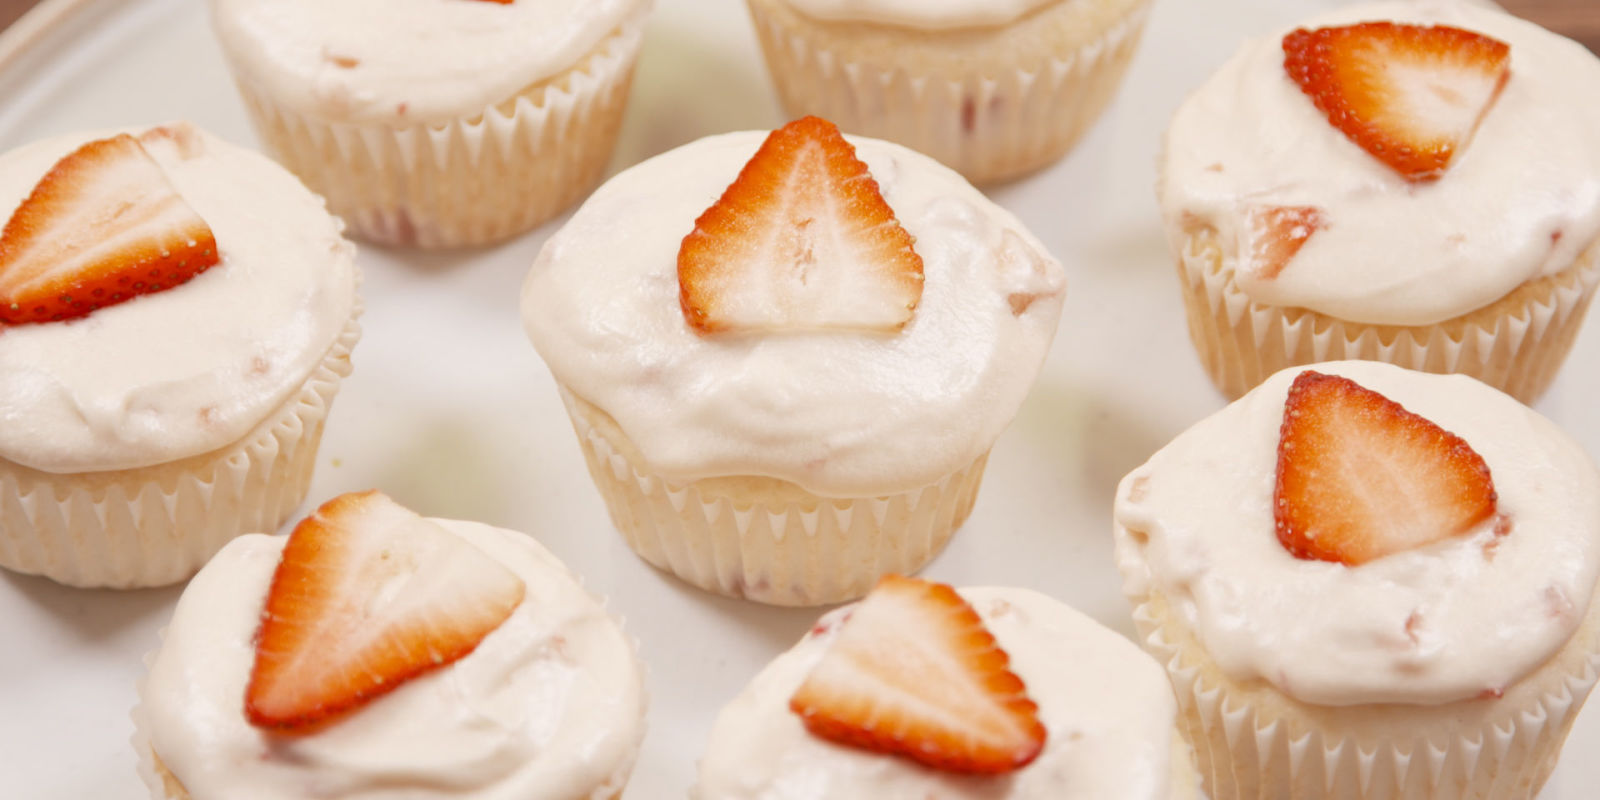 Strawberry Champagne Mimosa Cupcakes - How To Make Strawberry Cupcakes ...